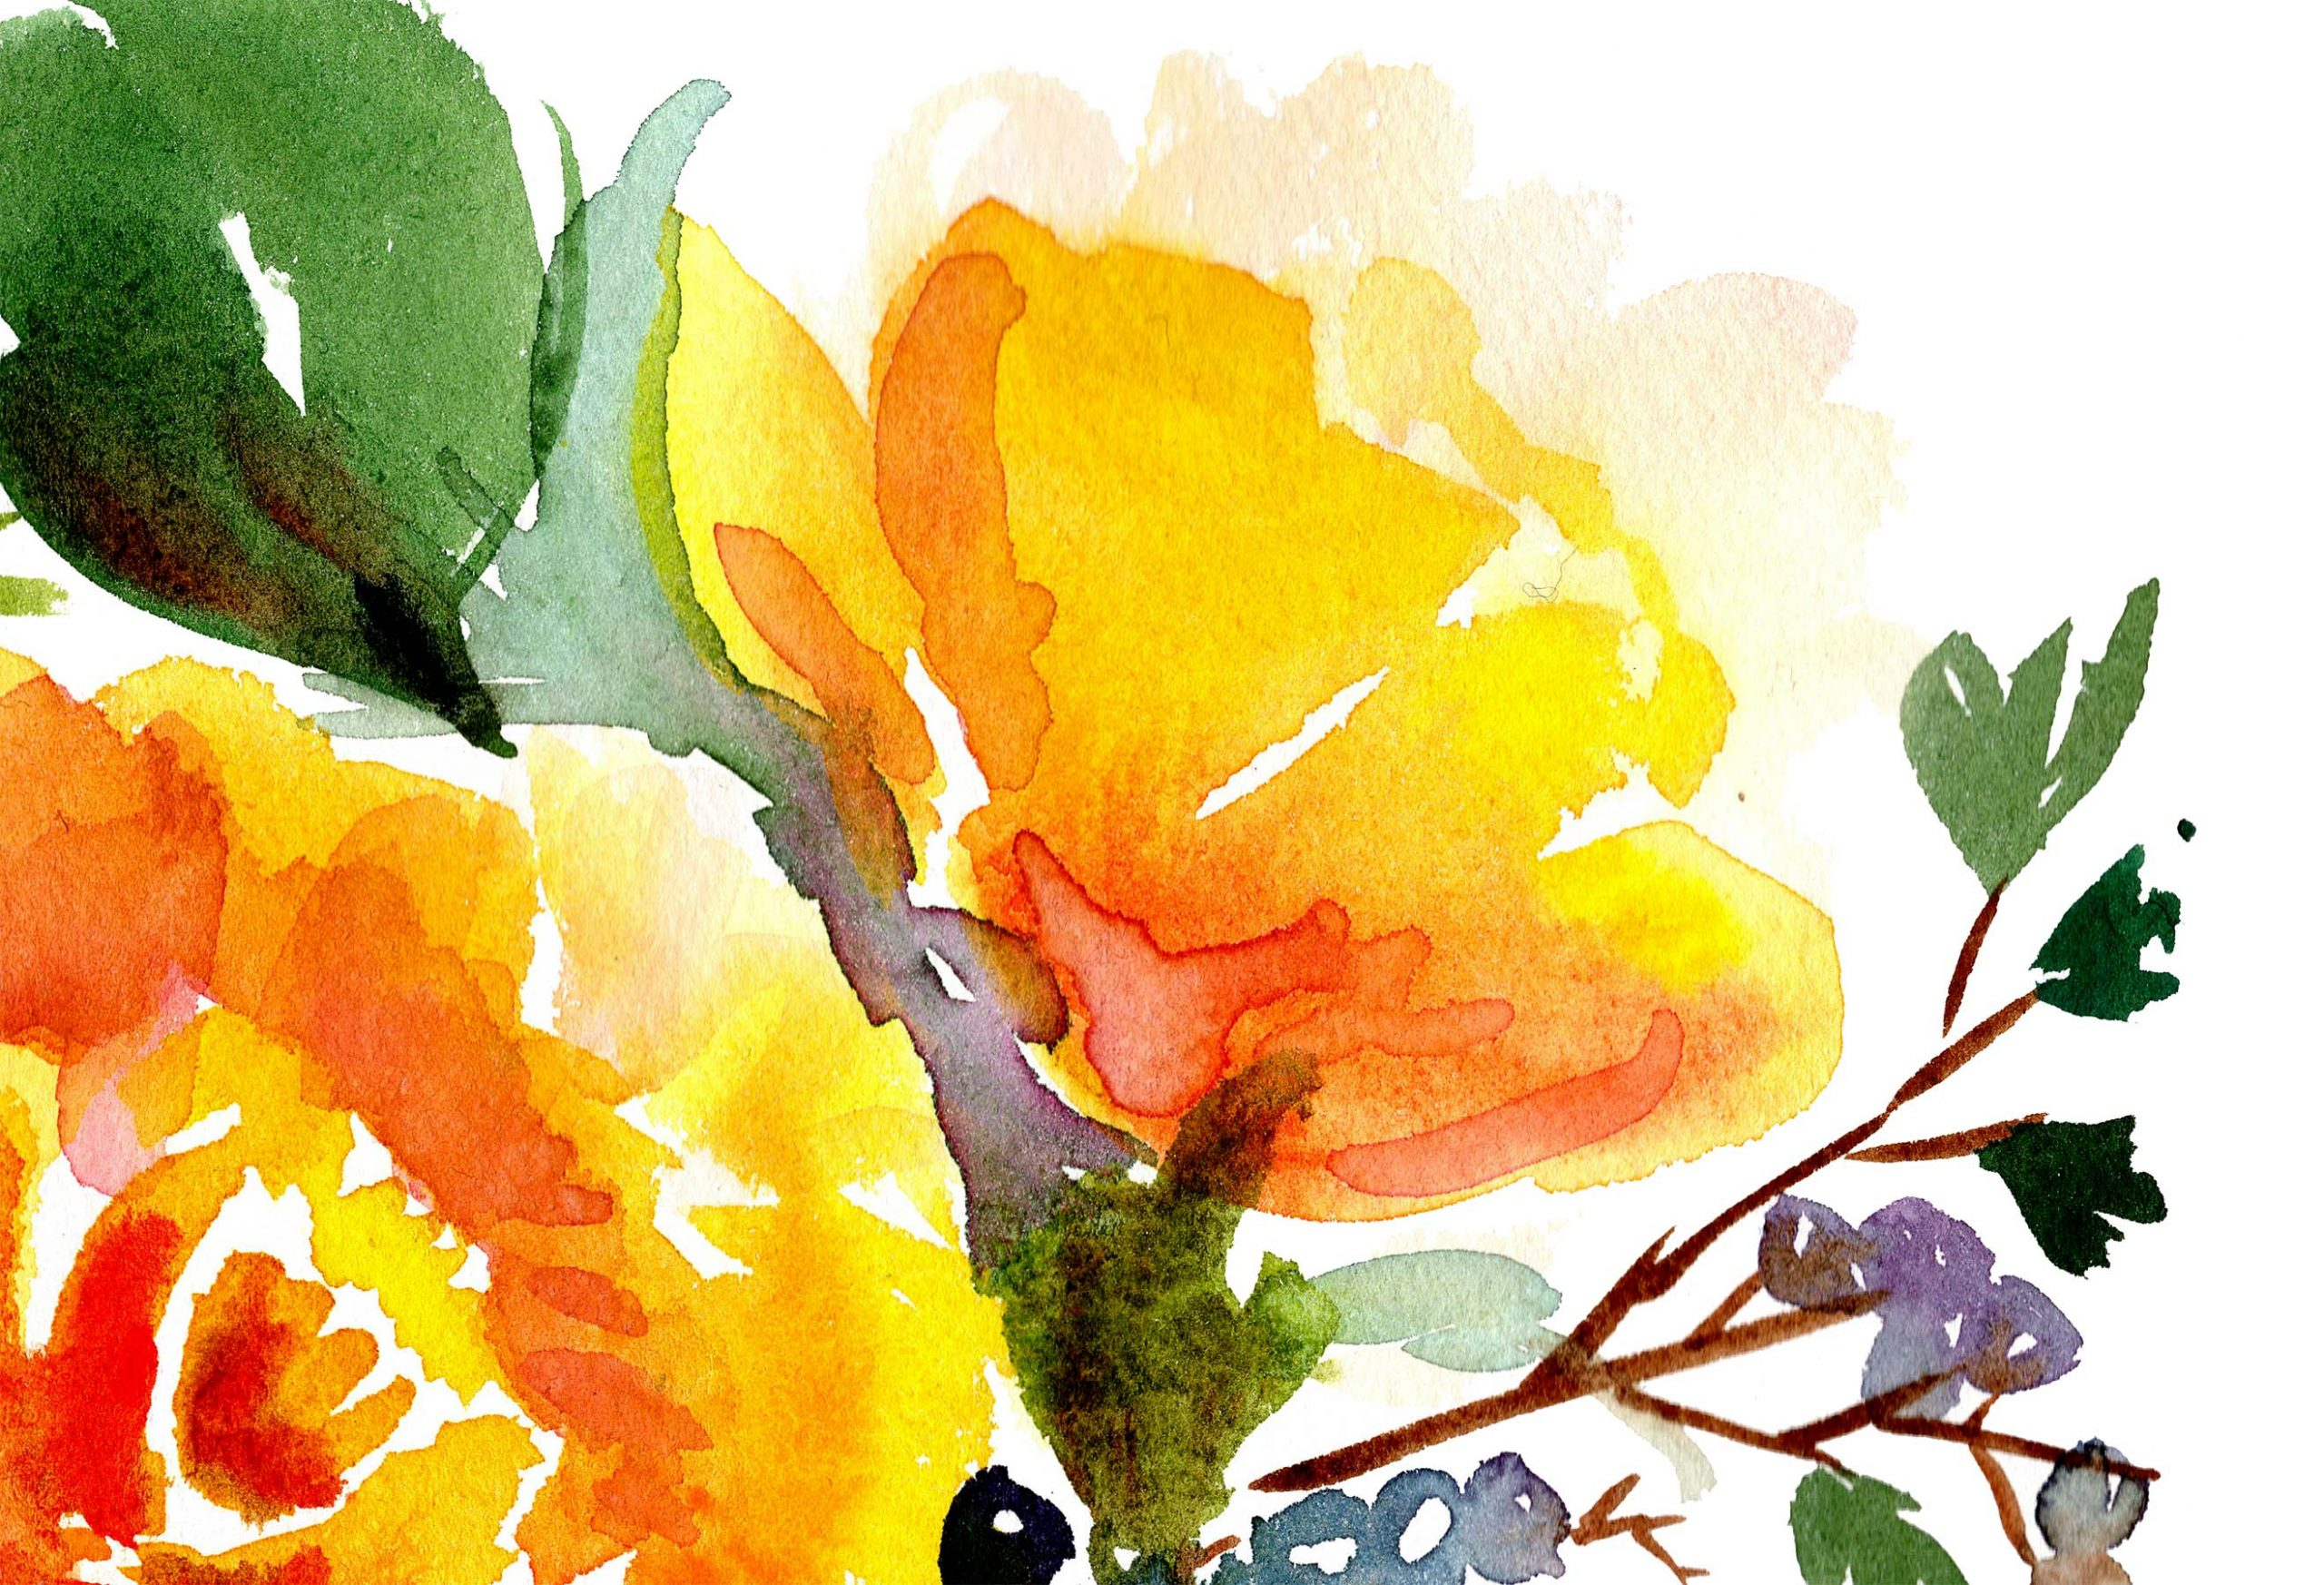 Berries and Yellow Roses detail